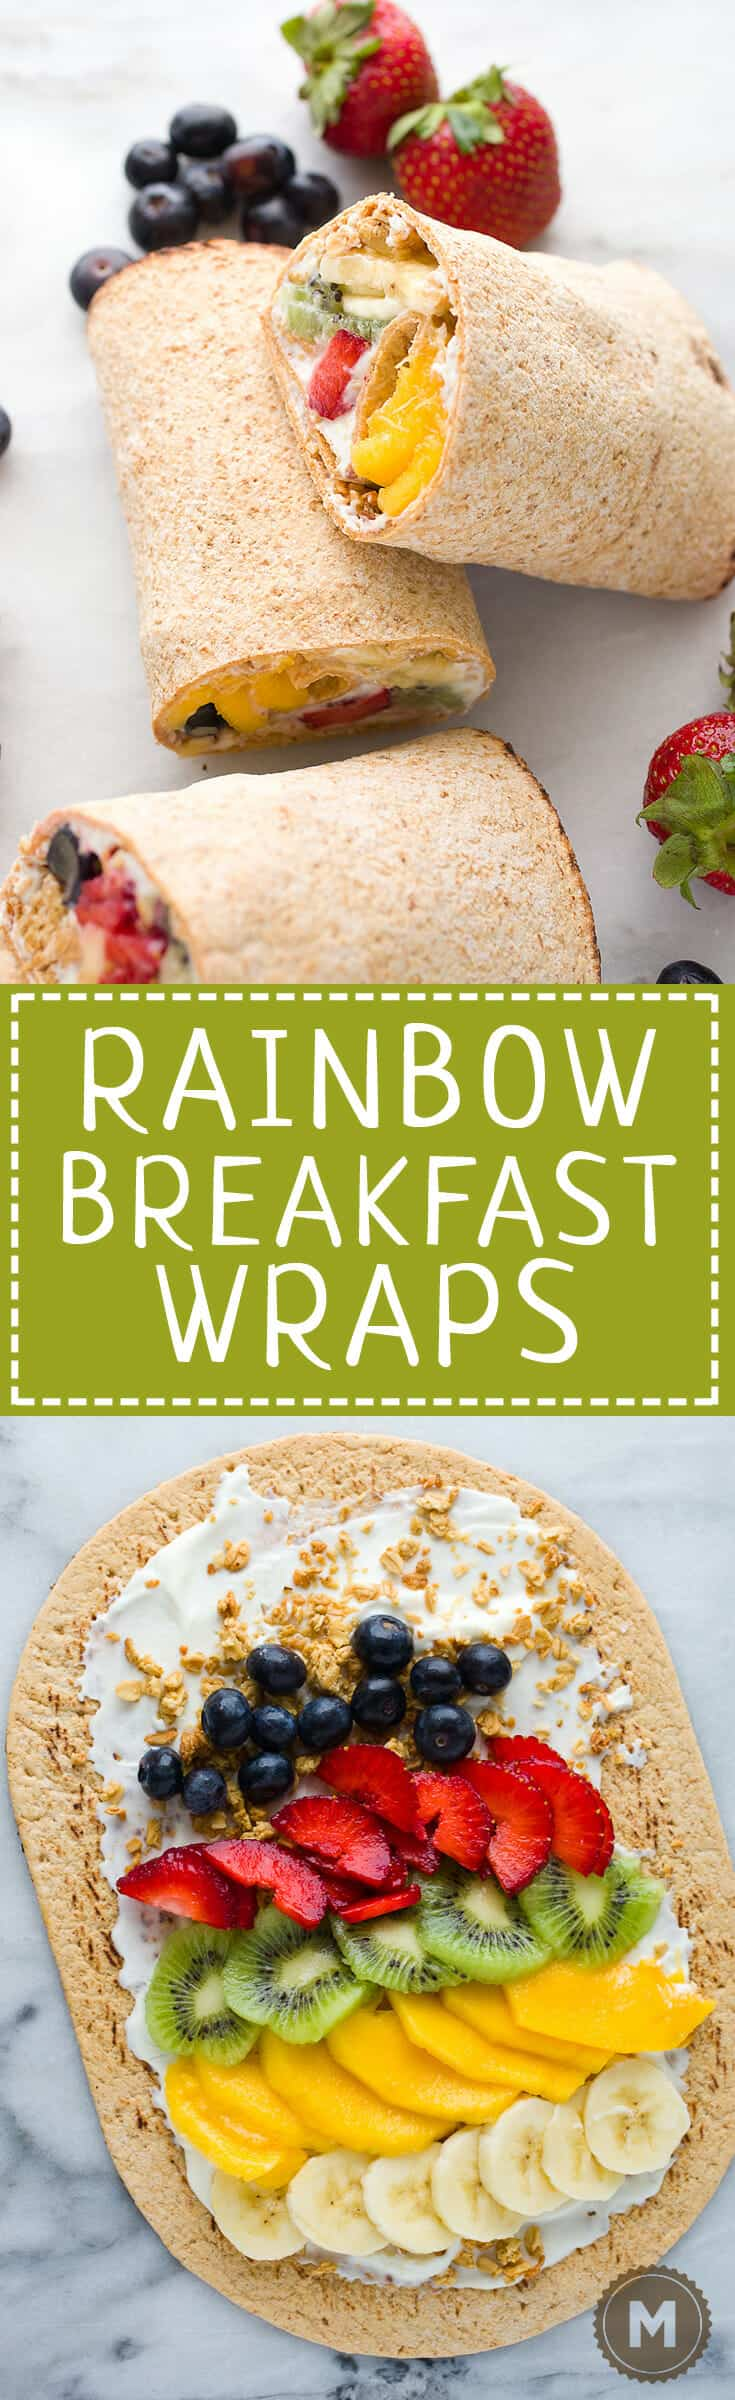 Rainbow Breakfast Wraps: 🌈 These quick wraps are so quick to make an a perfect way to start the day. Packed with granola, Greek yogurt, and colorful fruits and stuffed inside a flatbread. #sponsored | macheesmo.com